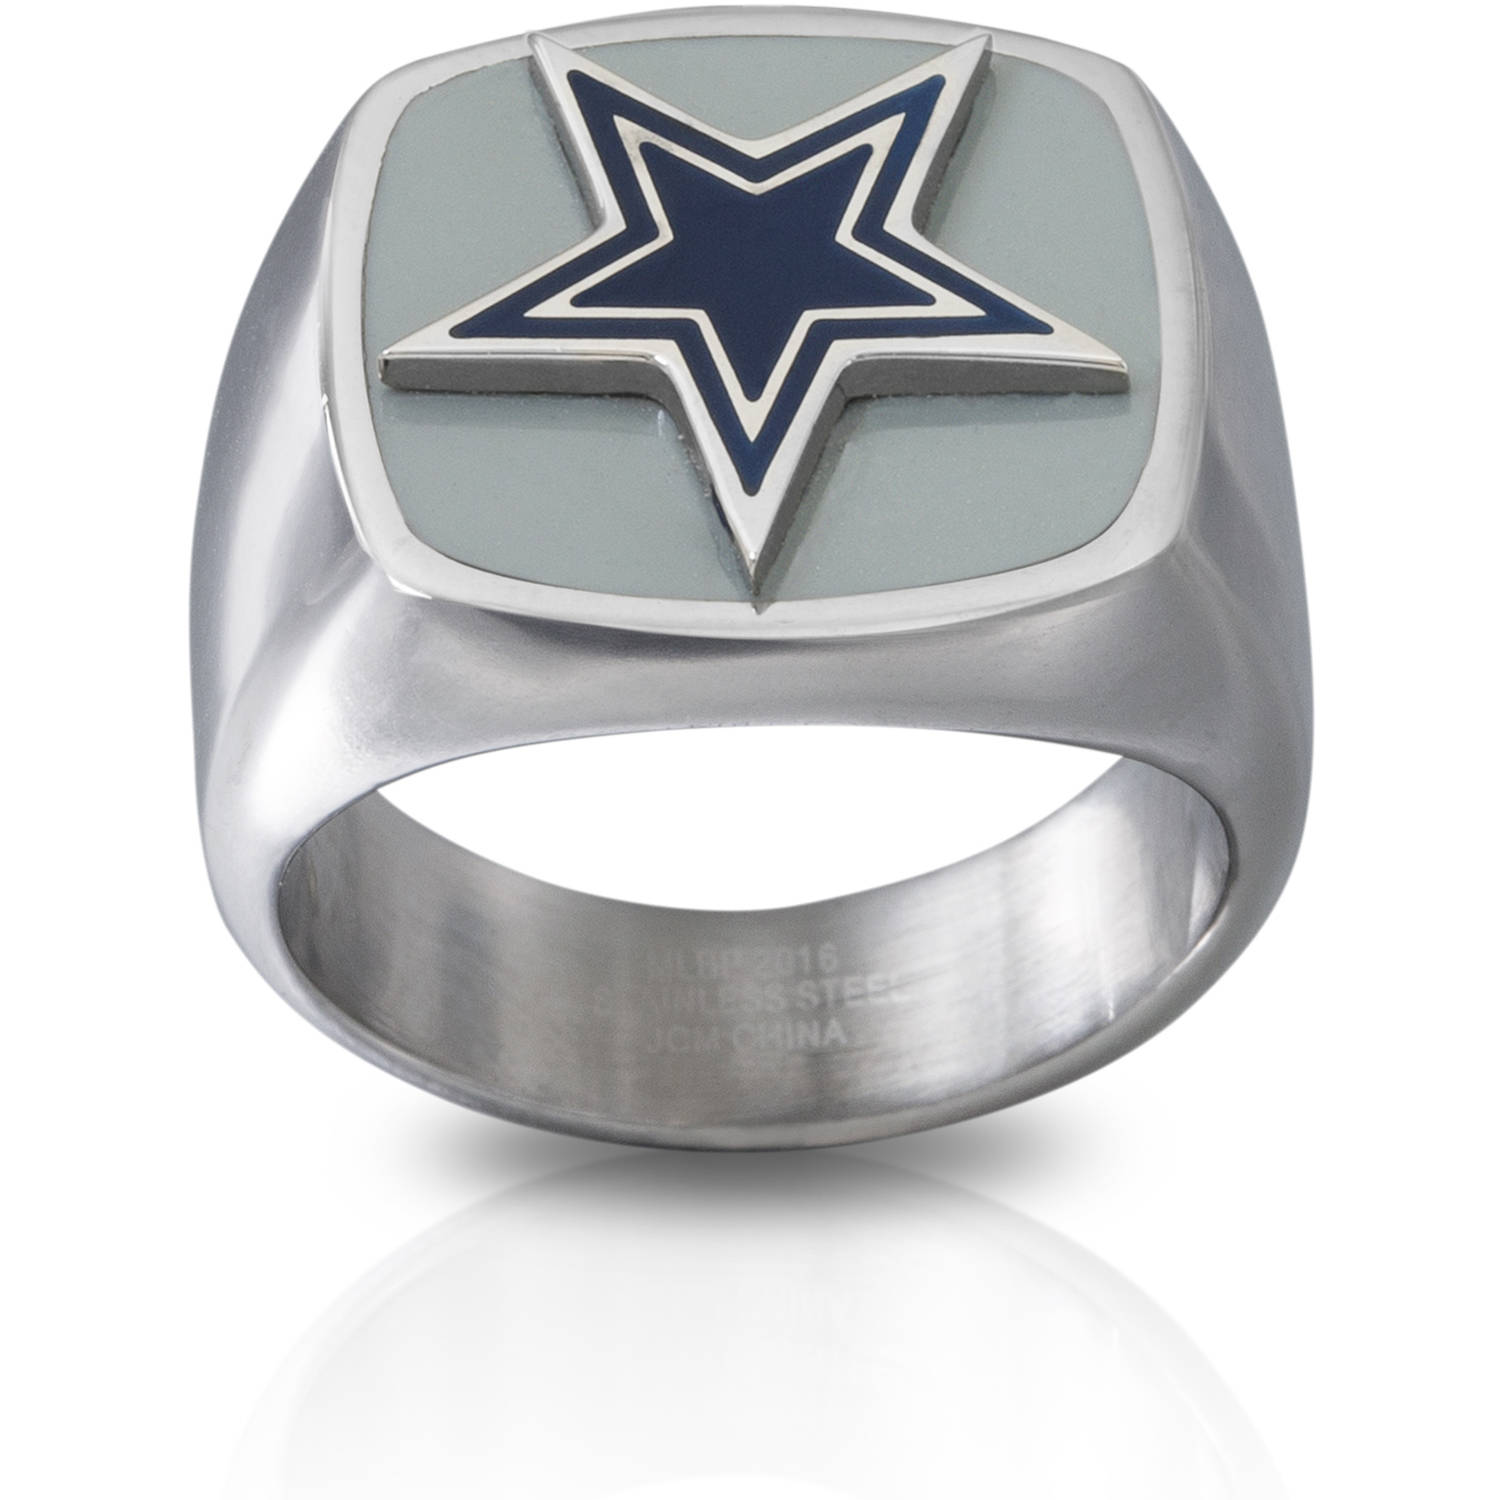 Stainless Steel Licensed NLF Dallas Cowboys Logo Ring Walmartcom